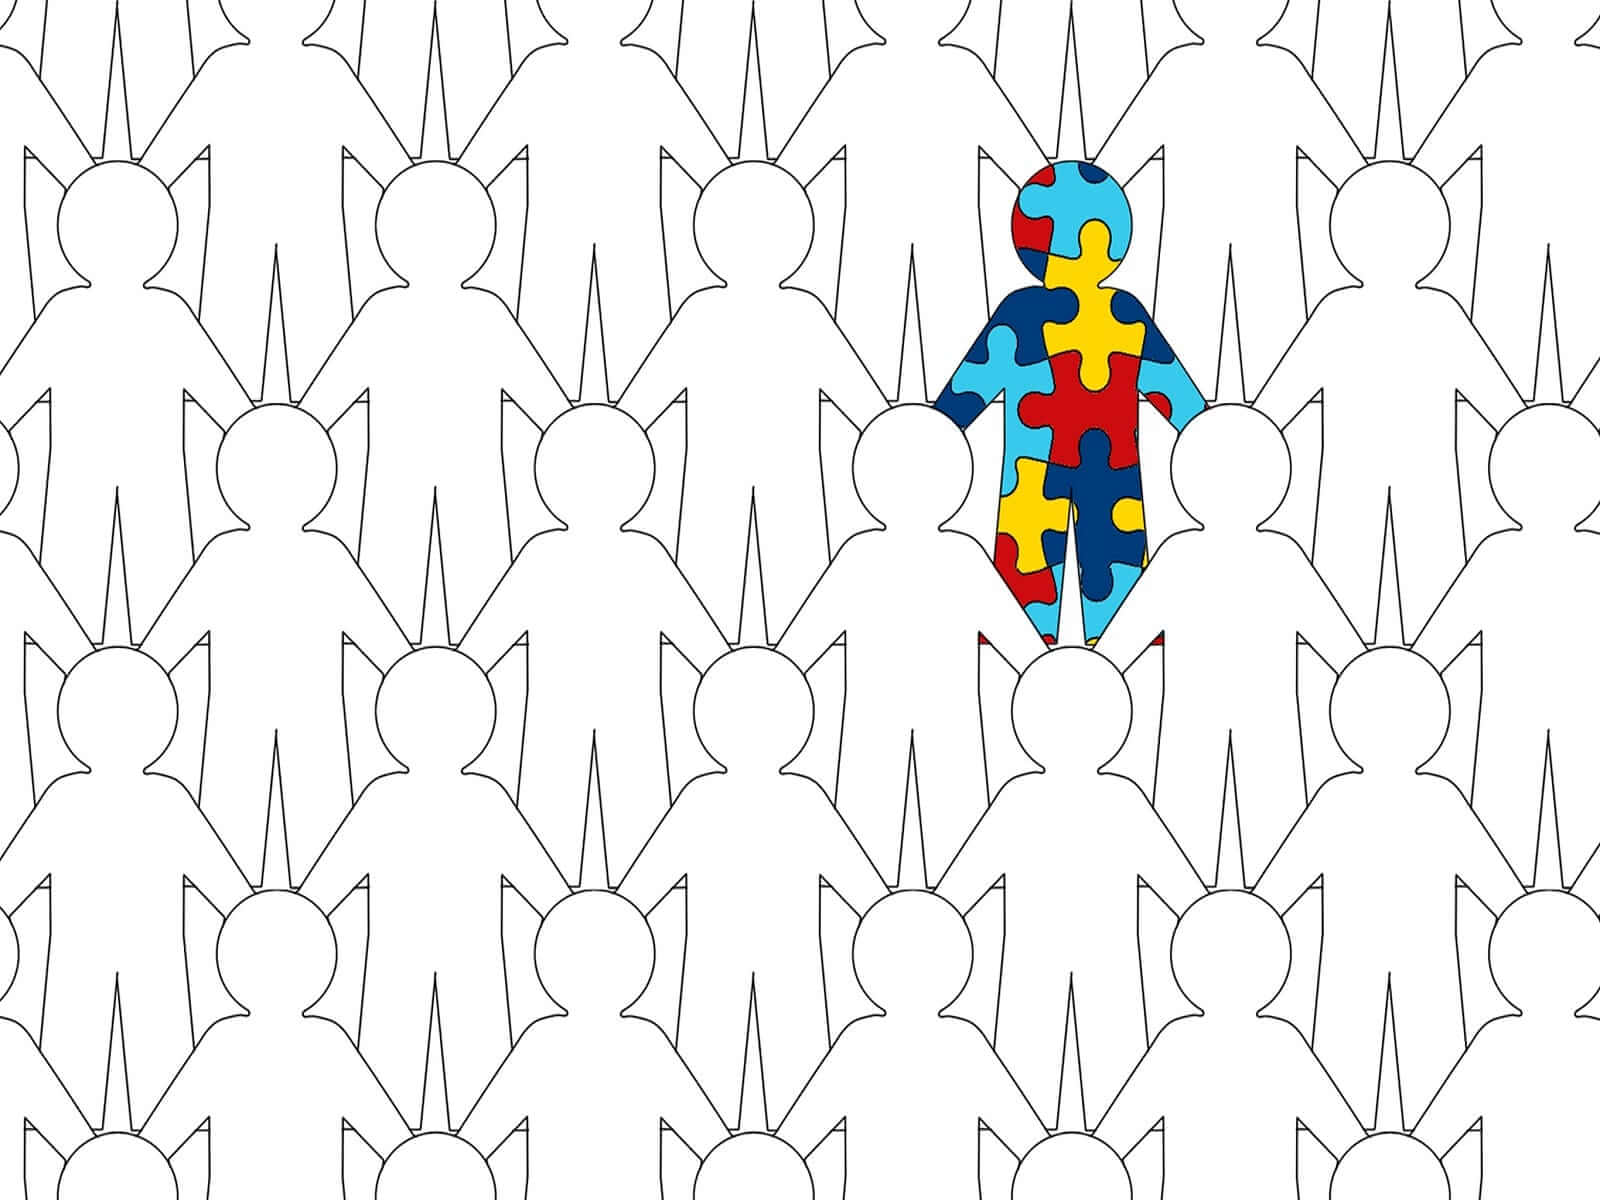 colorful figure standing out depicting autism